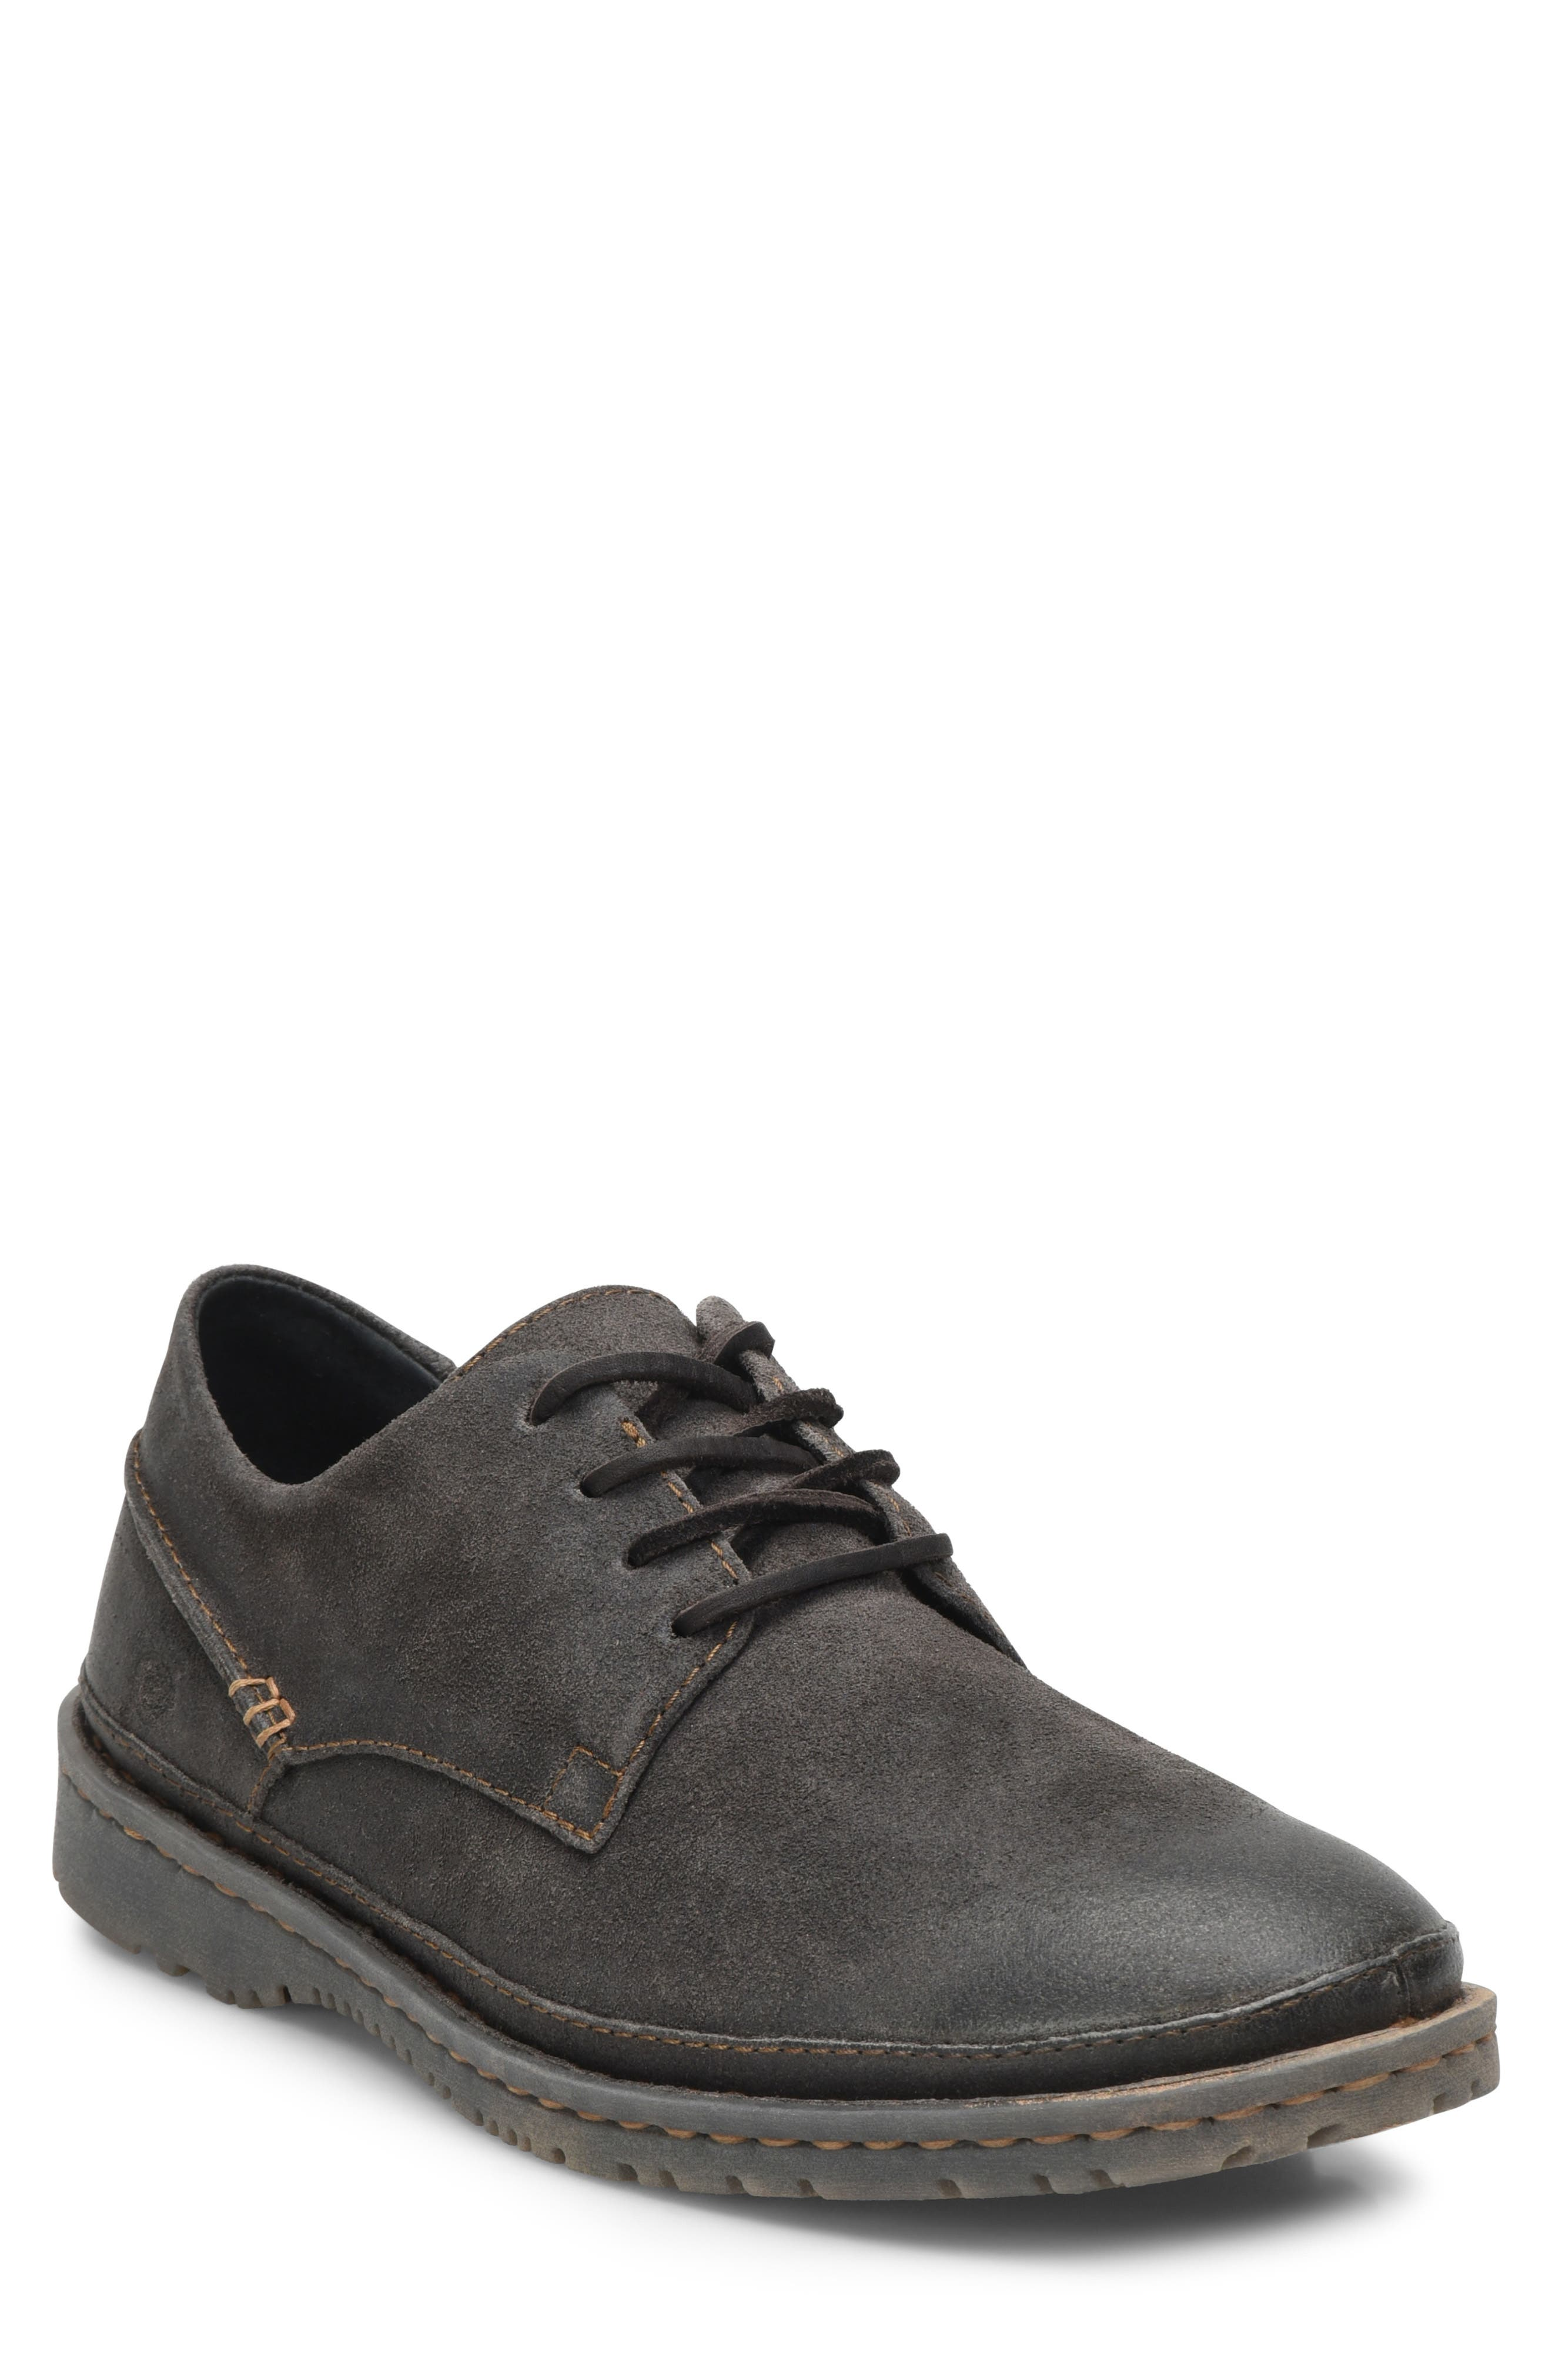 Gilles Plain Toe Derby,                         Main,                         color, DARK GREY LEATHER